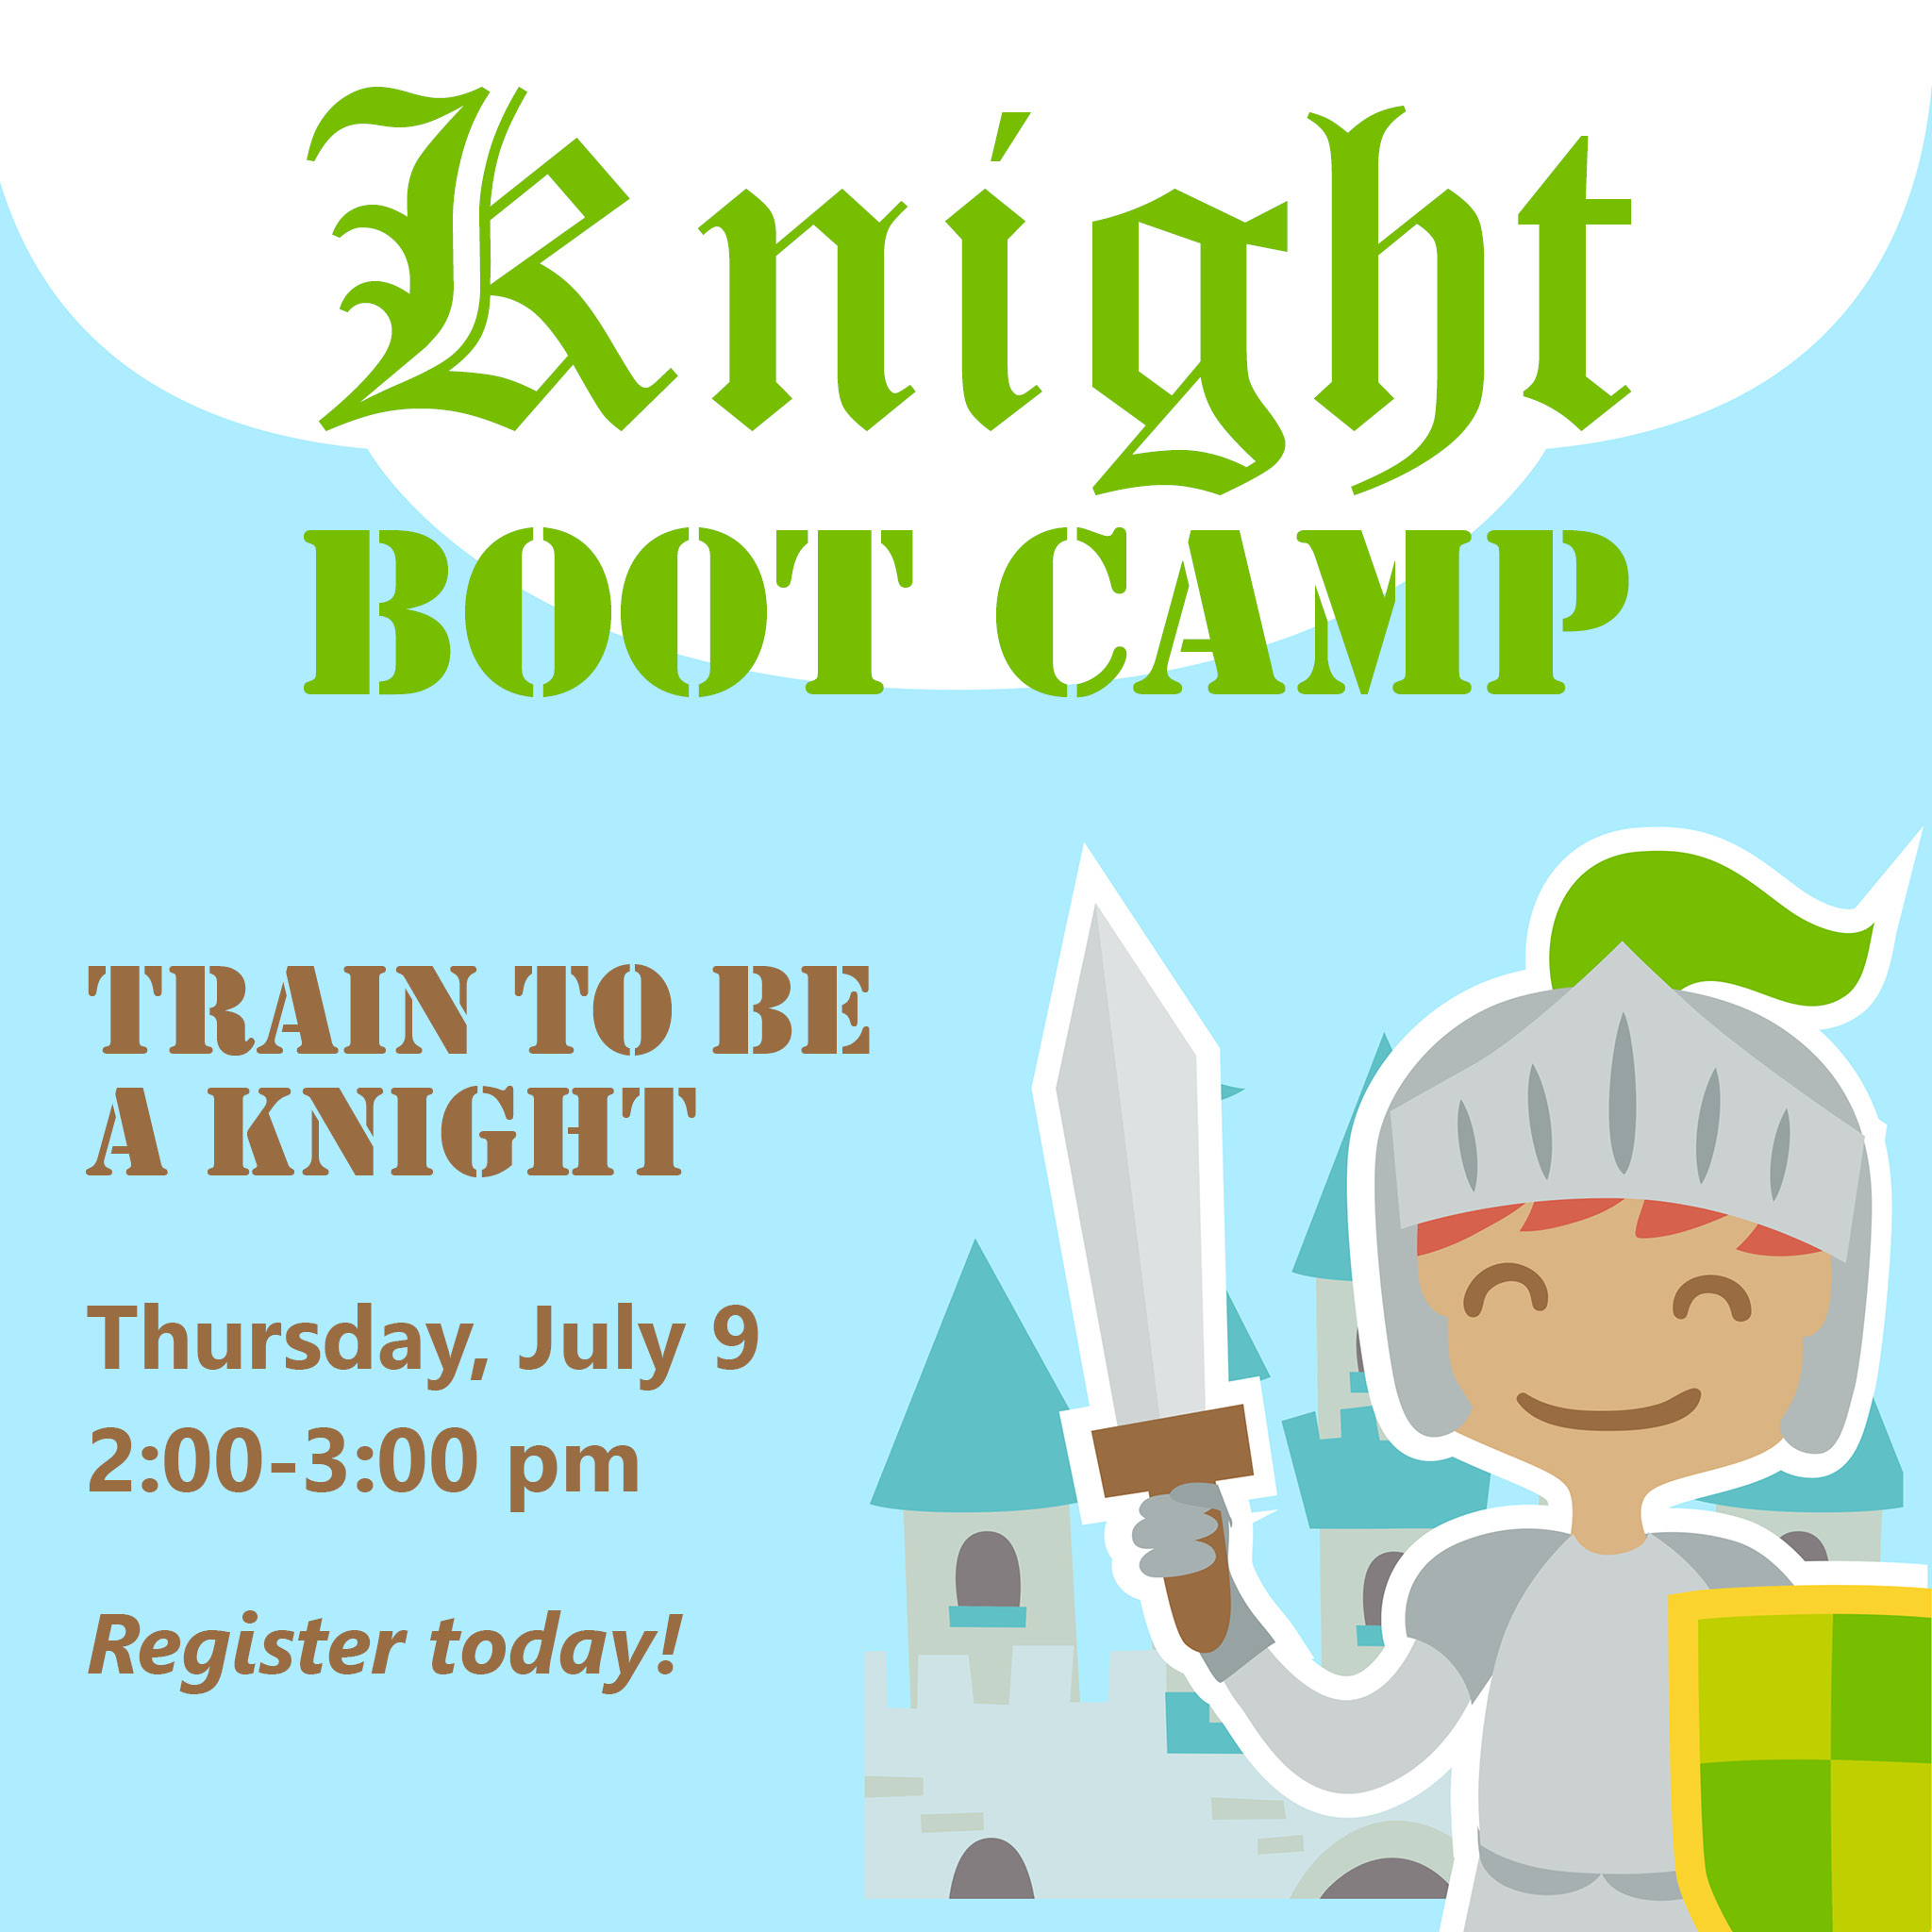 Knight Boot Camp